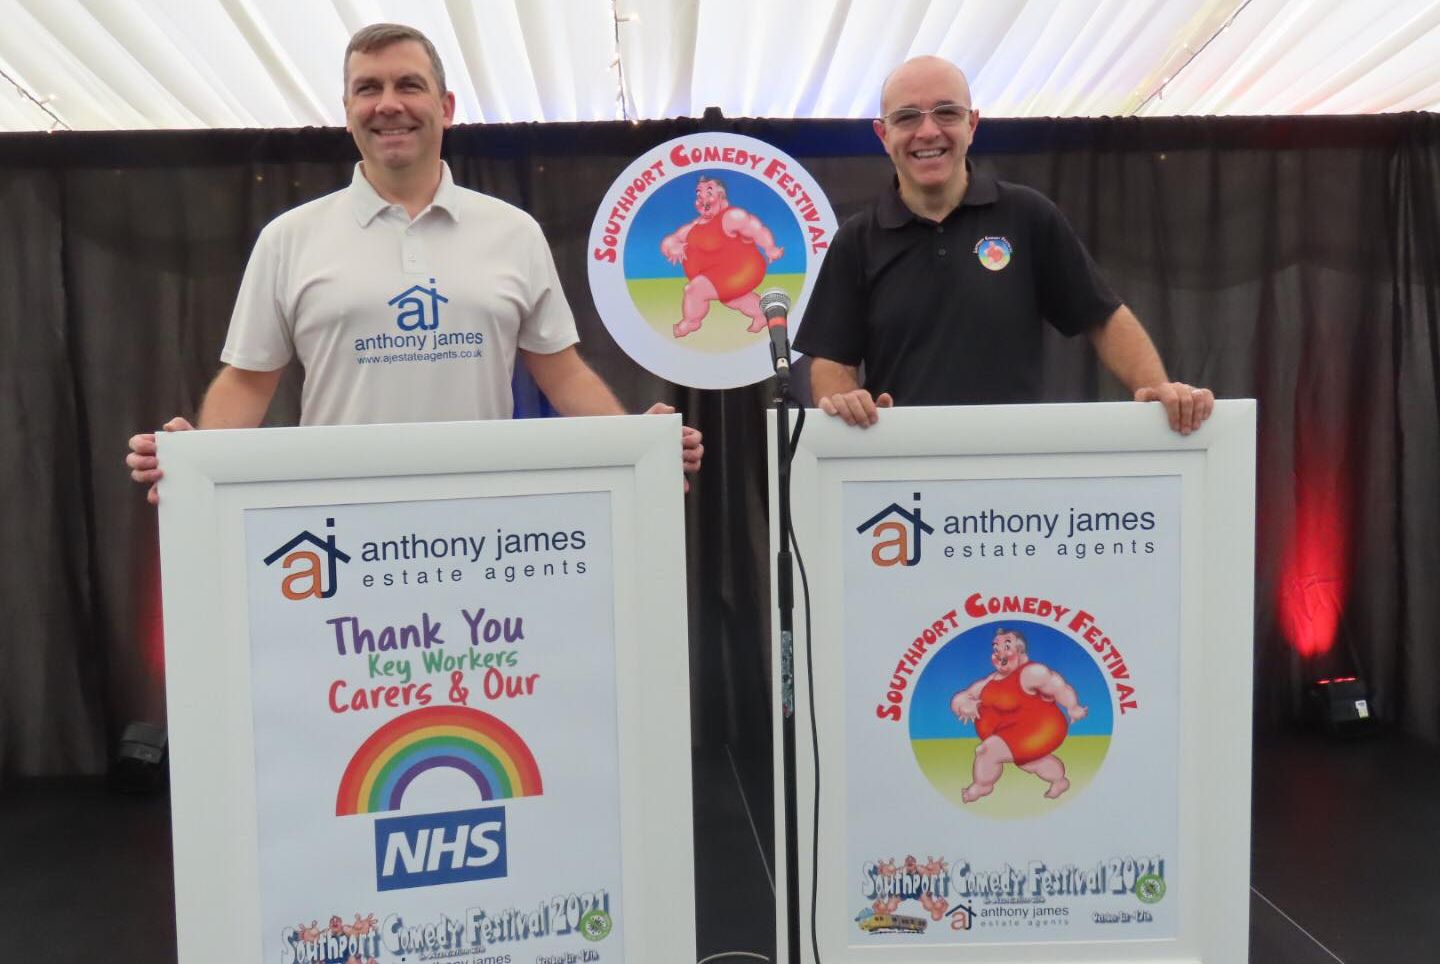 Anthony James Estate Agents is hosting a free Thumbs Up For The NHS Comedy Bingo night at Southport Comedy Festival to thank NHS and care staff for the incredible job they have done during the Covid pandemic. Pictured are Anthony Estate Agents Director Mark Cunningham (left) and Festival Director Brendan Riley (right). Photo by Andrew Brown Media